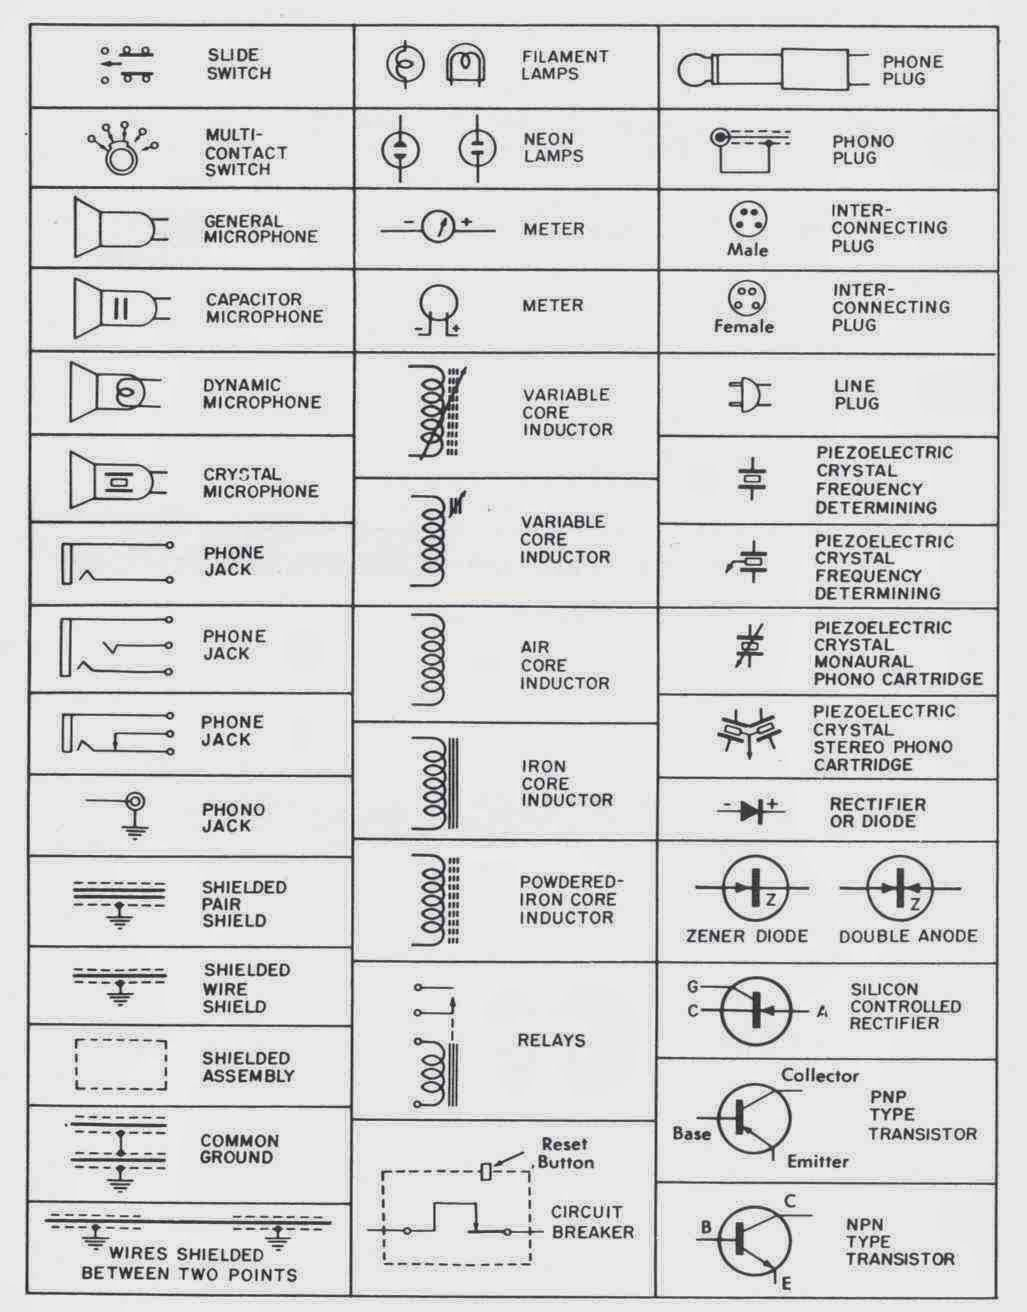 electrical symbols 11 ~ electrical engineering pics circuitelectrical symbols 11 ~ electrical engineering pics electronic engineering, electrical engineering, basic electrical wiring